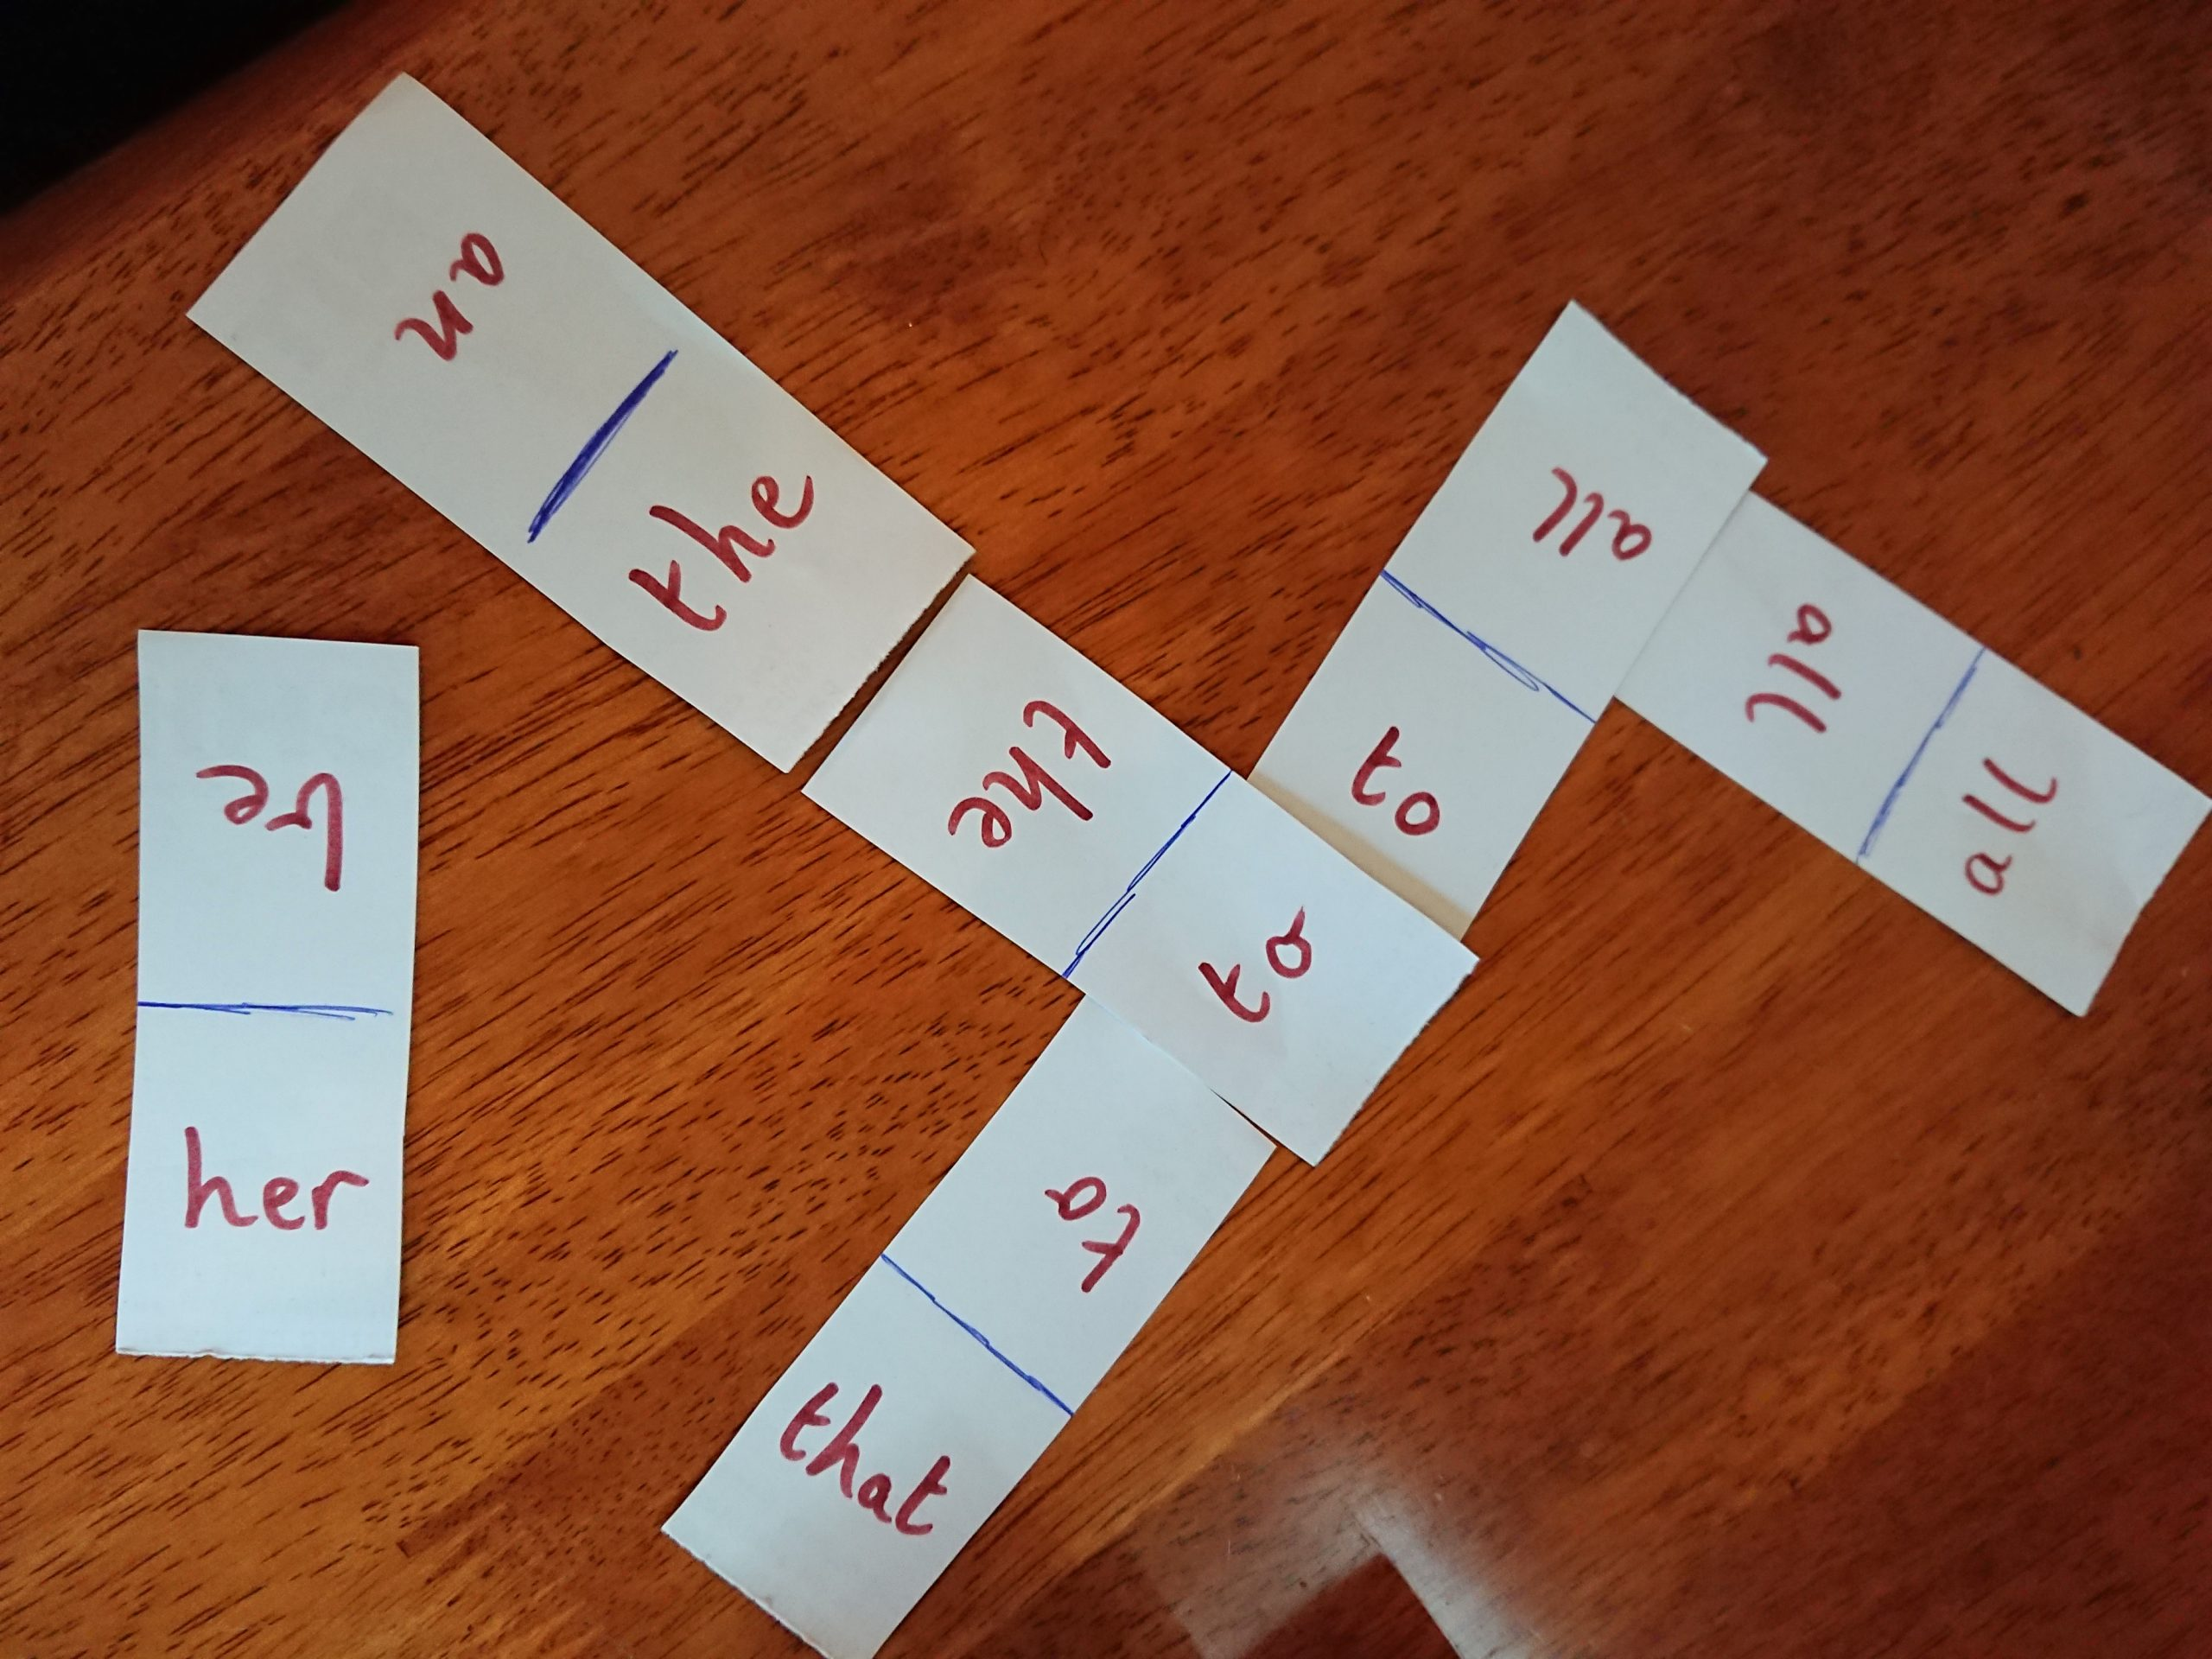 Dominos matching game using SIGHTWORDS